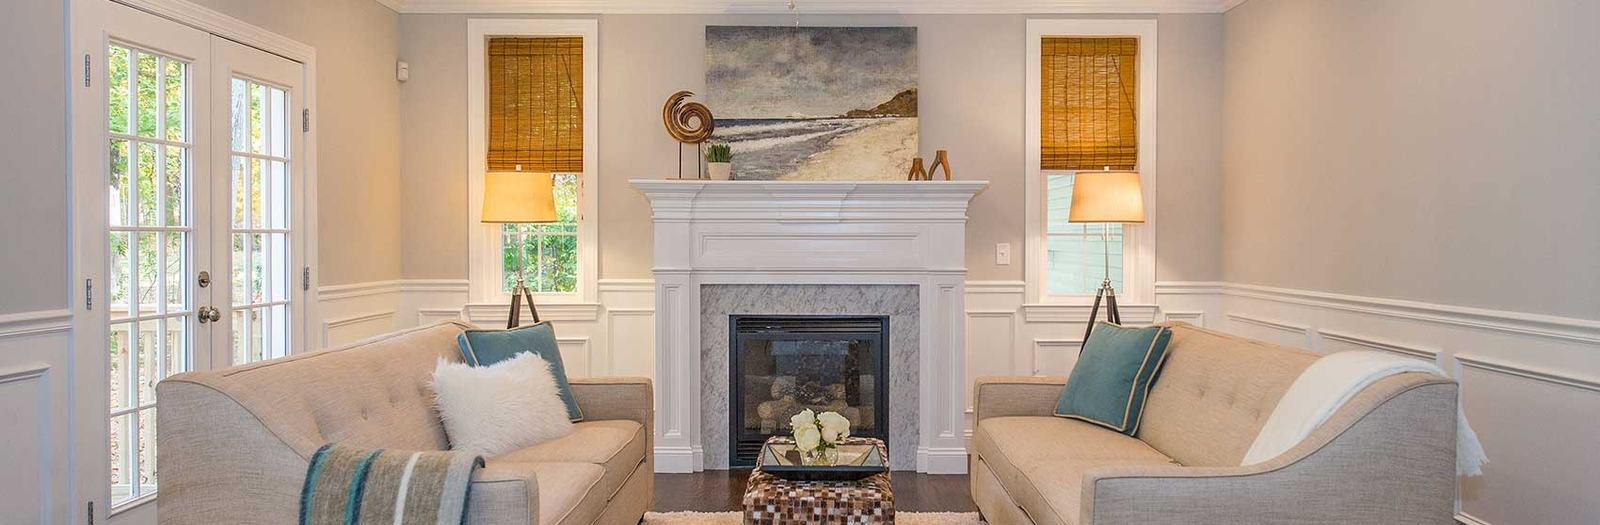 Transitional Family Room with natural fiber window coverings